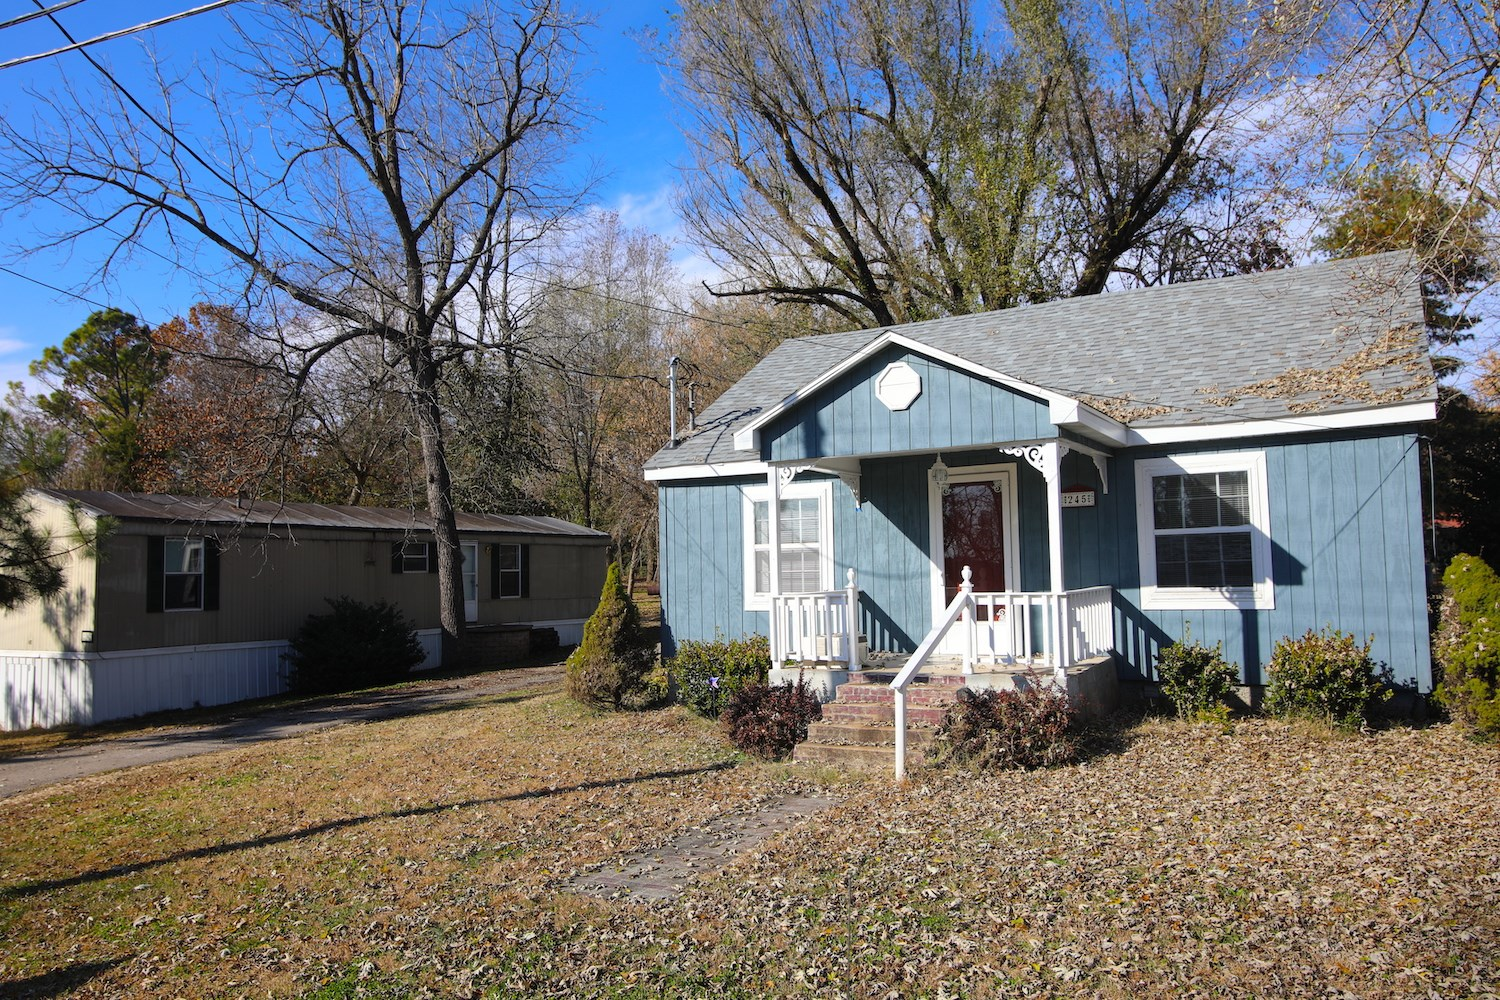 Two Homes for Sale in Mammoth Spring, AR